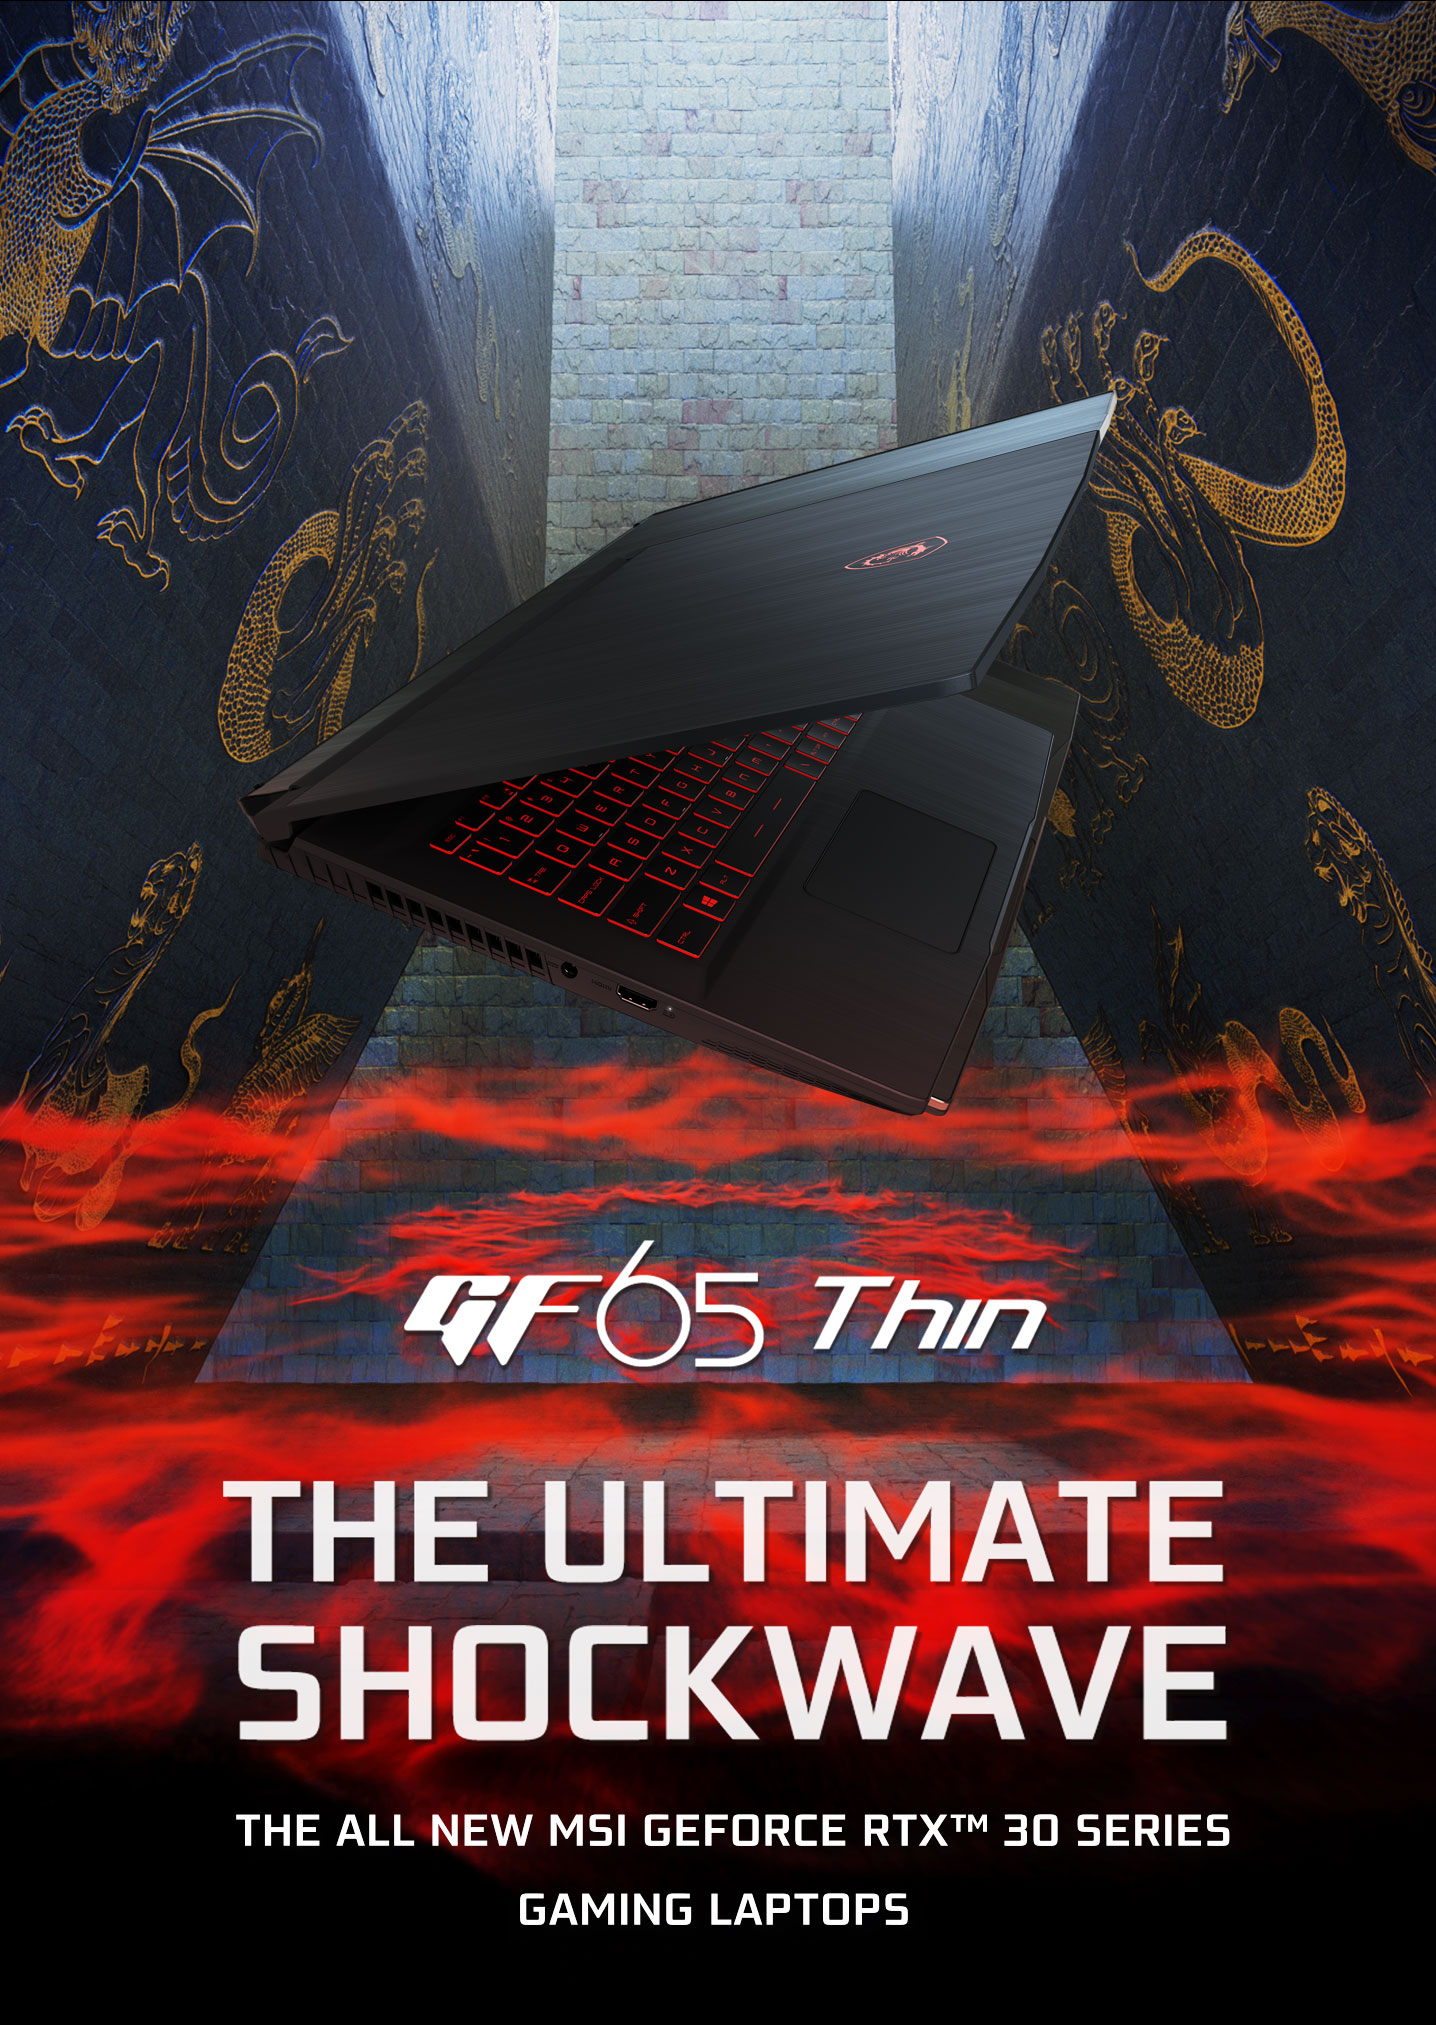 GF65 thin The ultimate shockwave